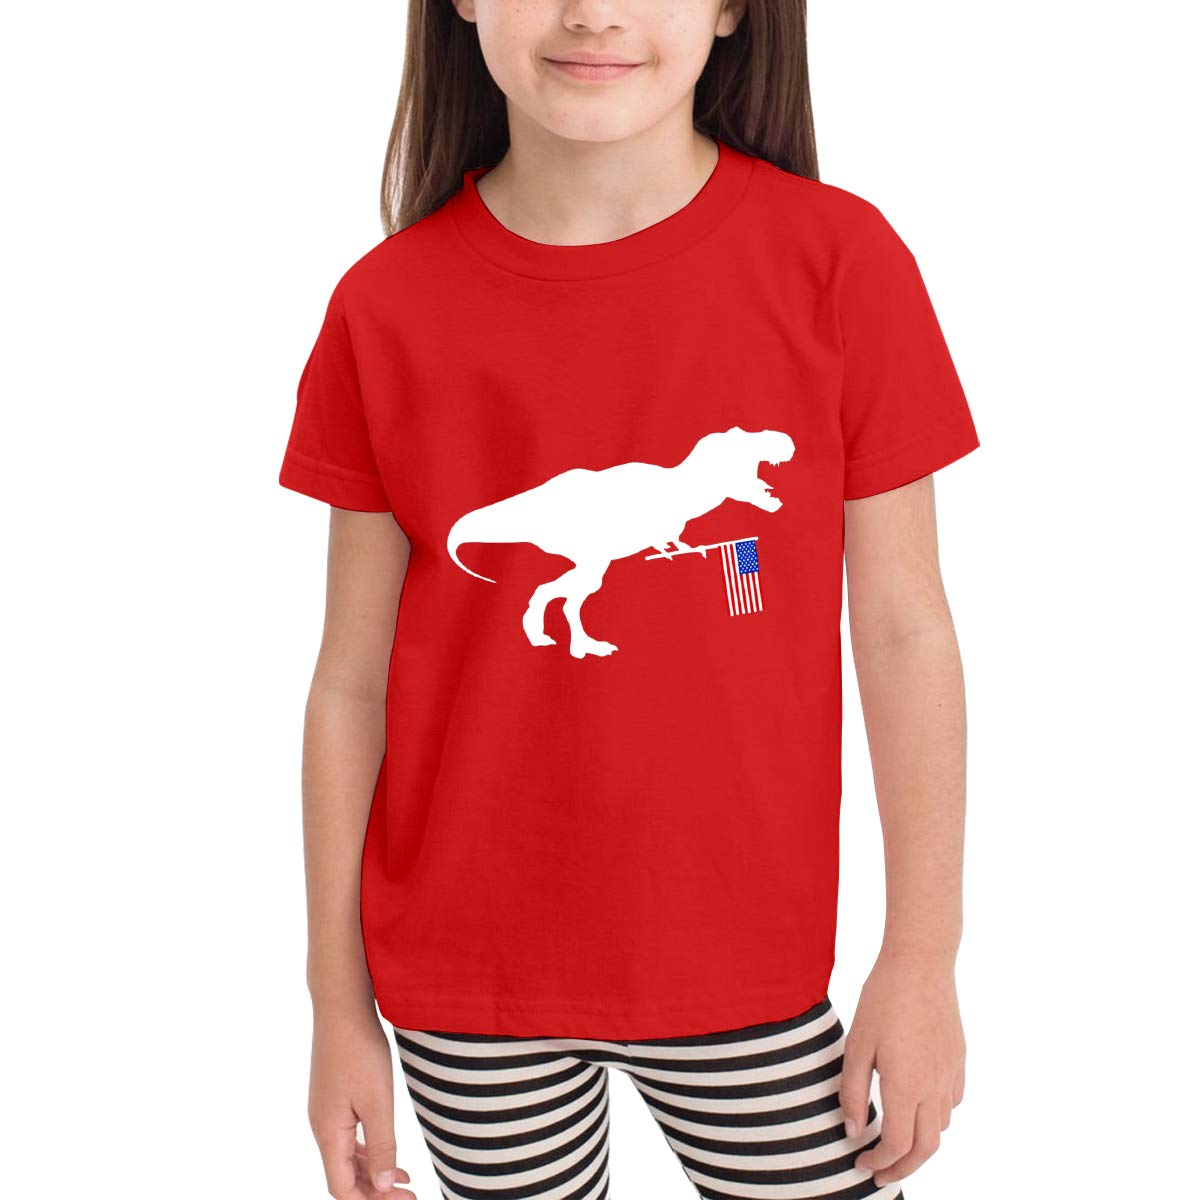 Kids T-Shirt Tops Black T Rex and American Flag Unisex Youths Short Sleeve T-Shirt